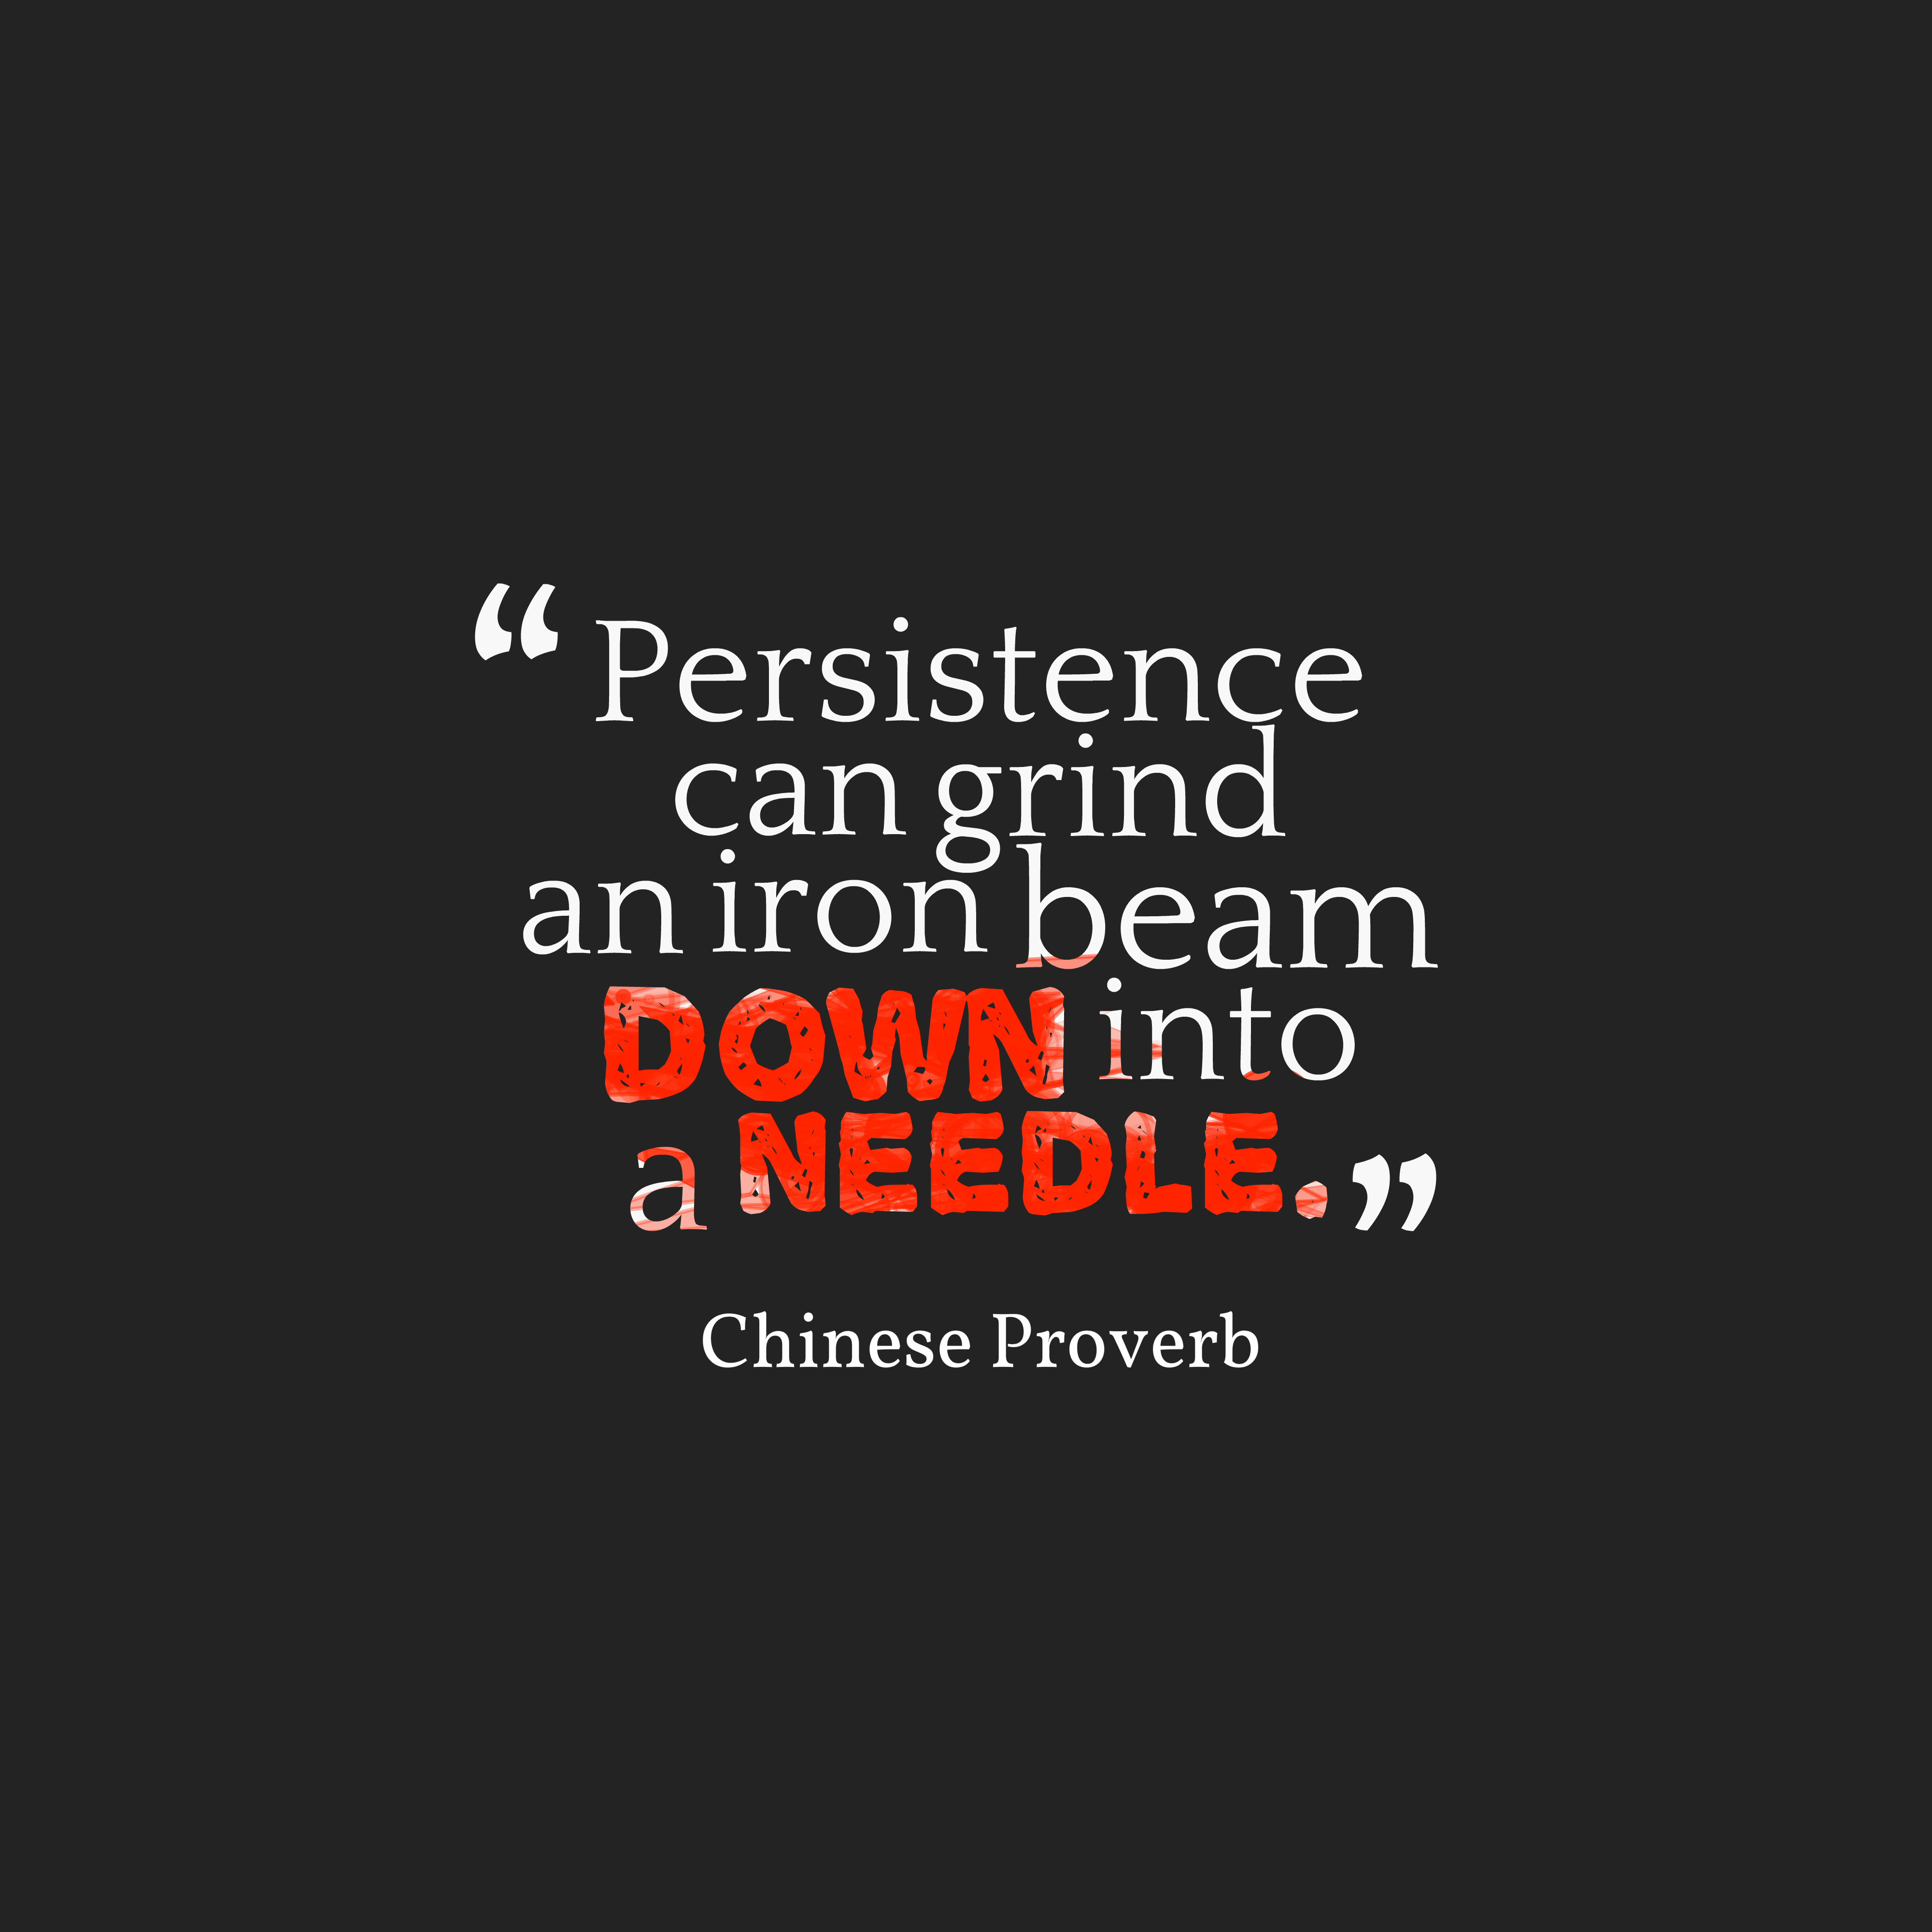 Quotes About Persistence: Chinese Wisdom About Persistence